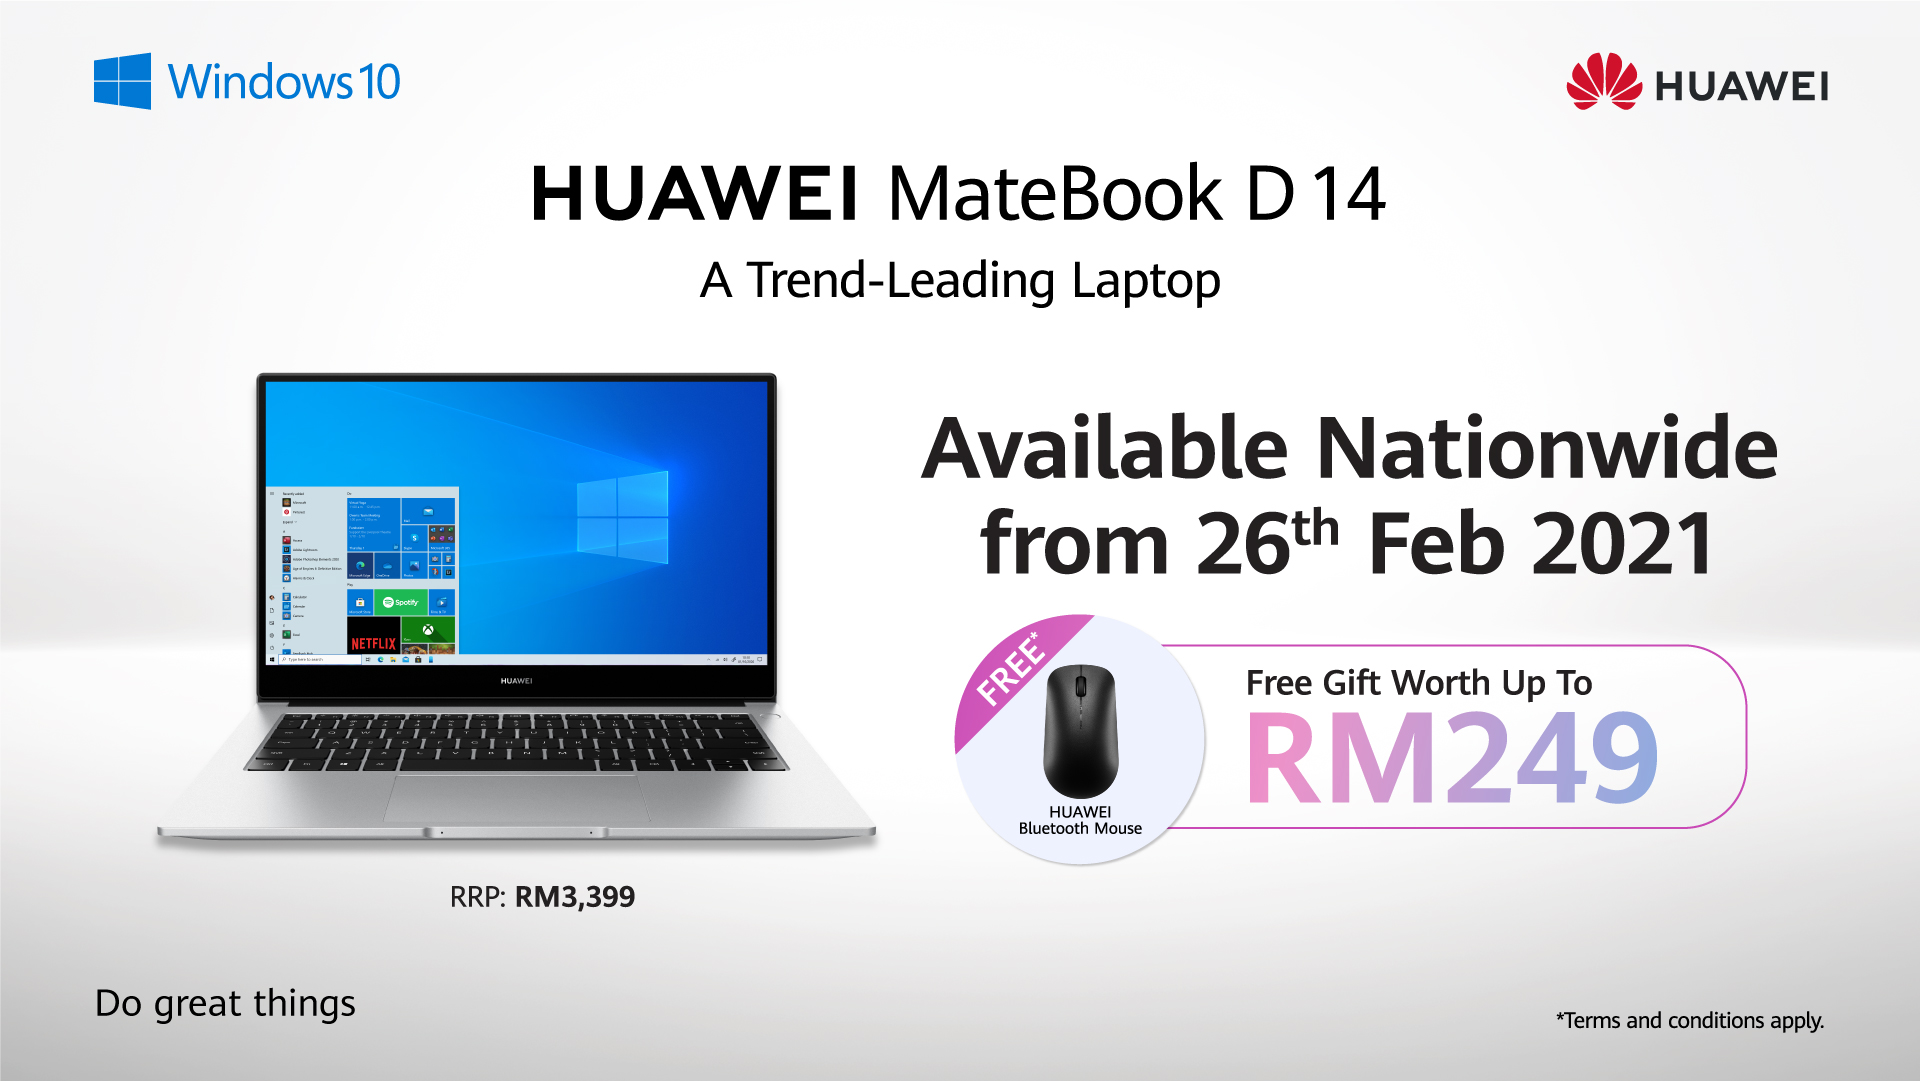 HUAWEI Unveils Its New and Improved HUAWEI MateBook D 14 2020 Intel Edition